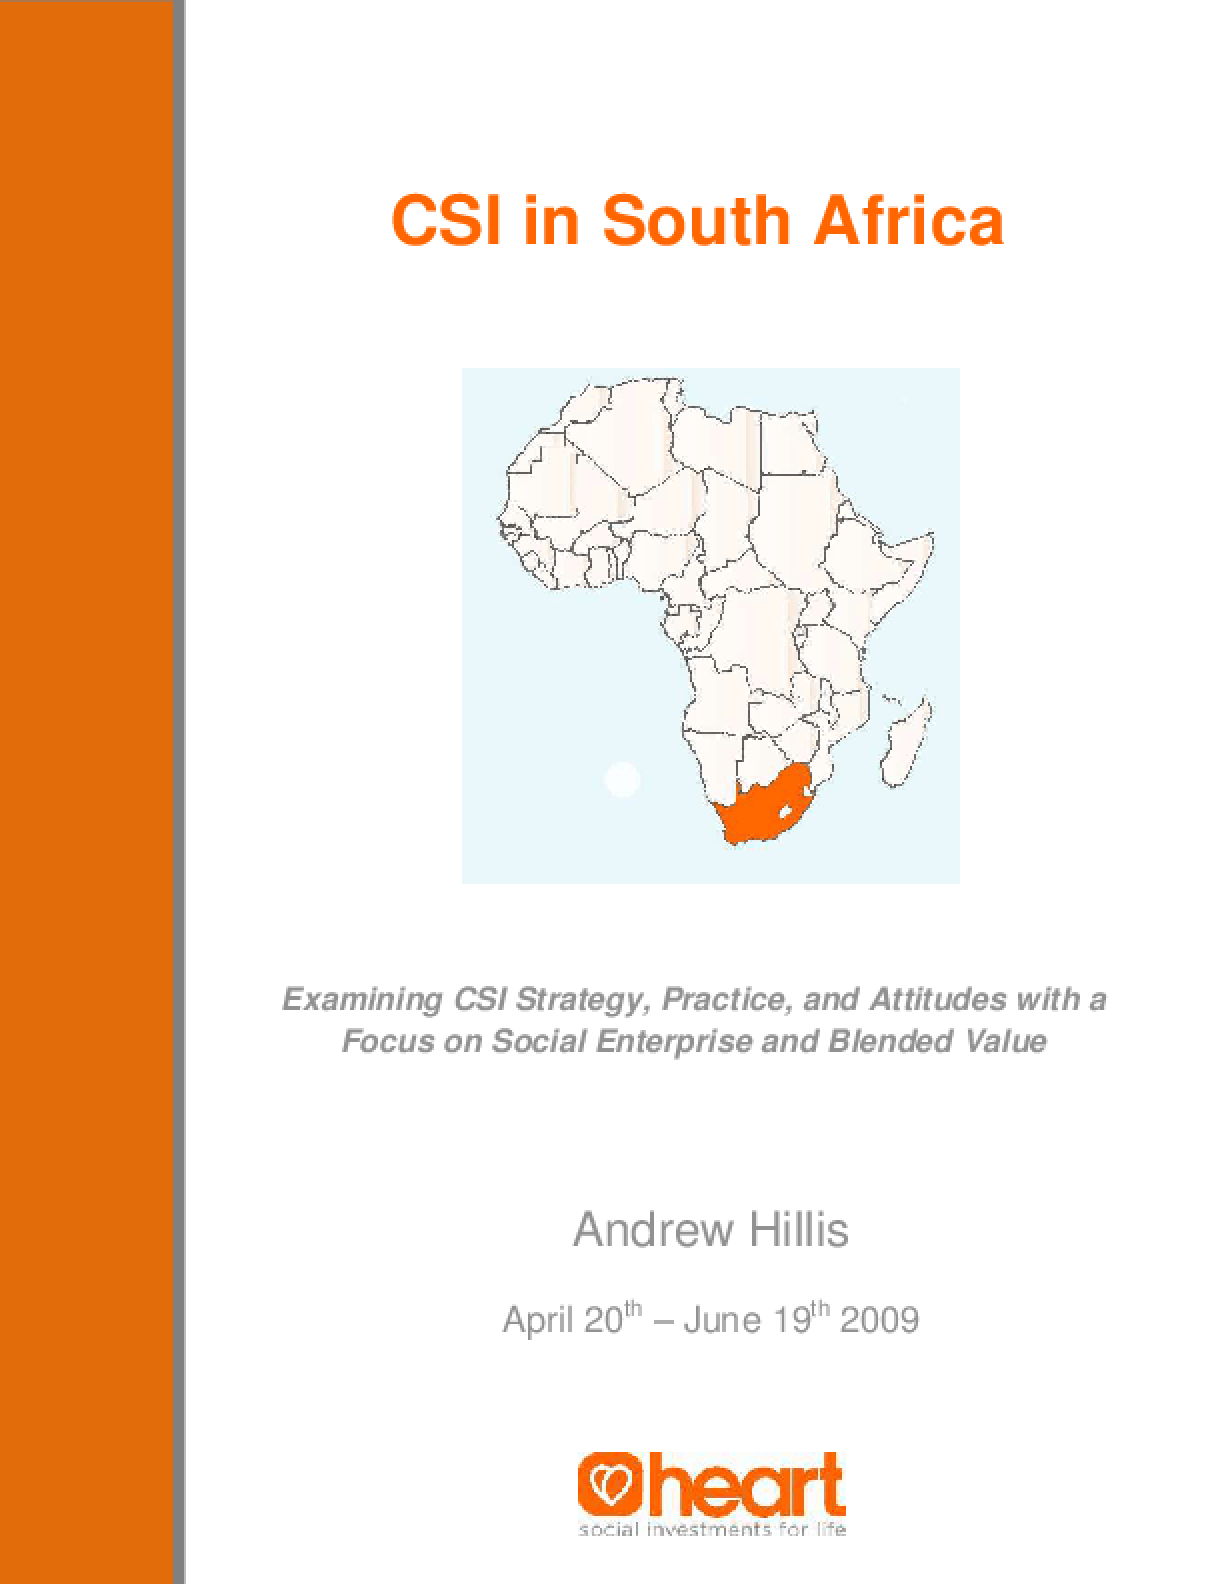 CSi in South Africa: Examining CSI Strategy, Practice, and Attitudes with a Focus on Social Enterprise and Blended Value